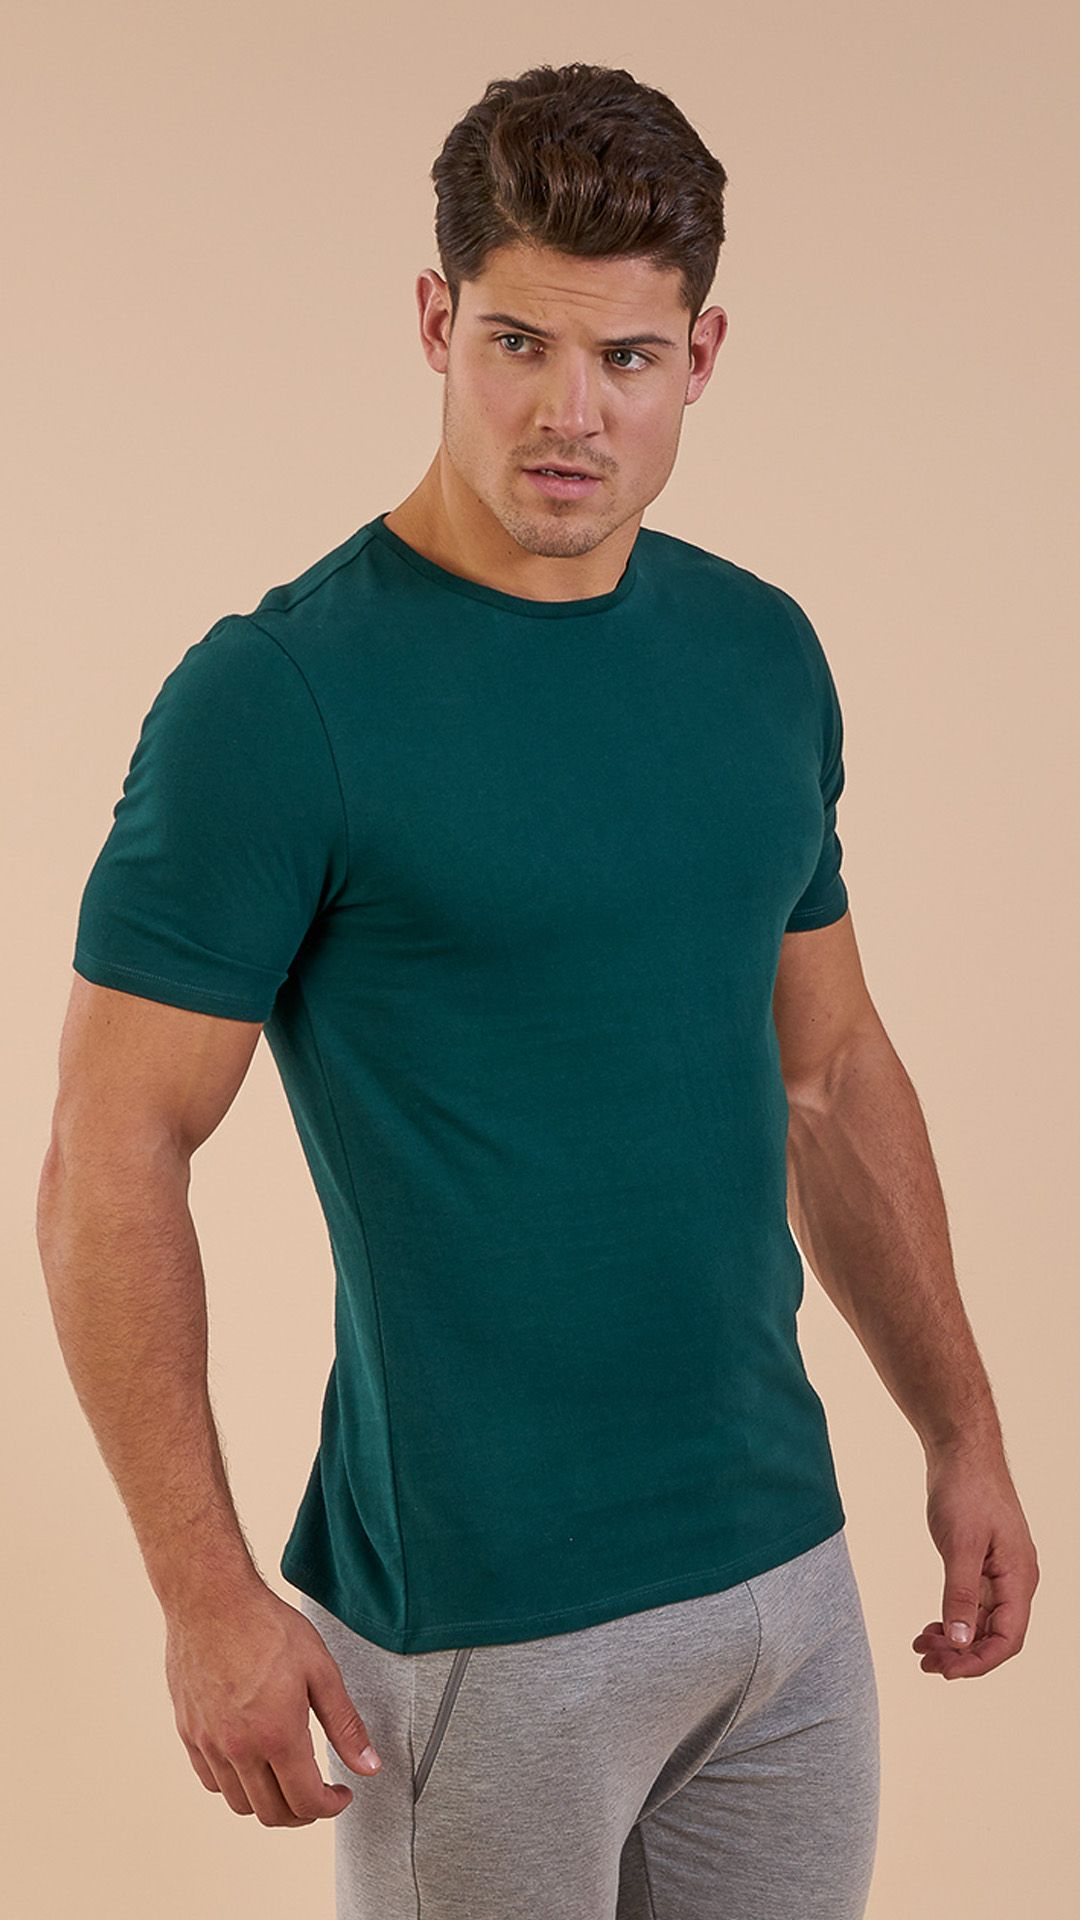 0d810c01 The Brushed Cotton T-Shirt in Forest Green is the perfect T-shirt to ...